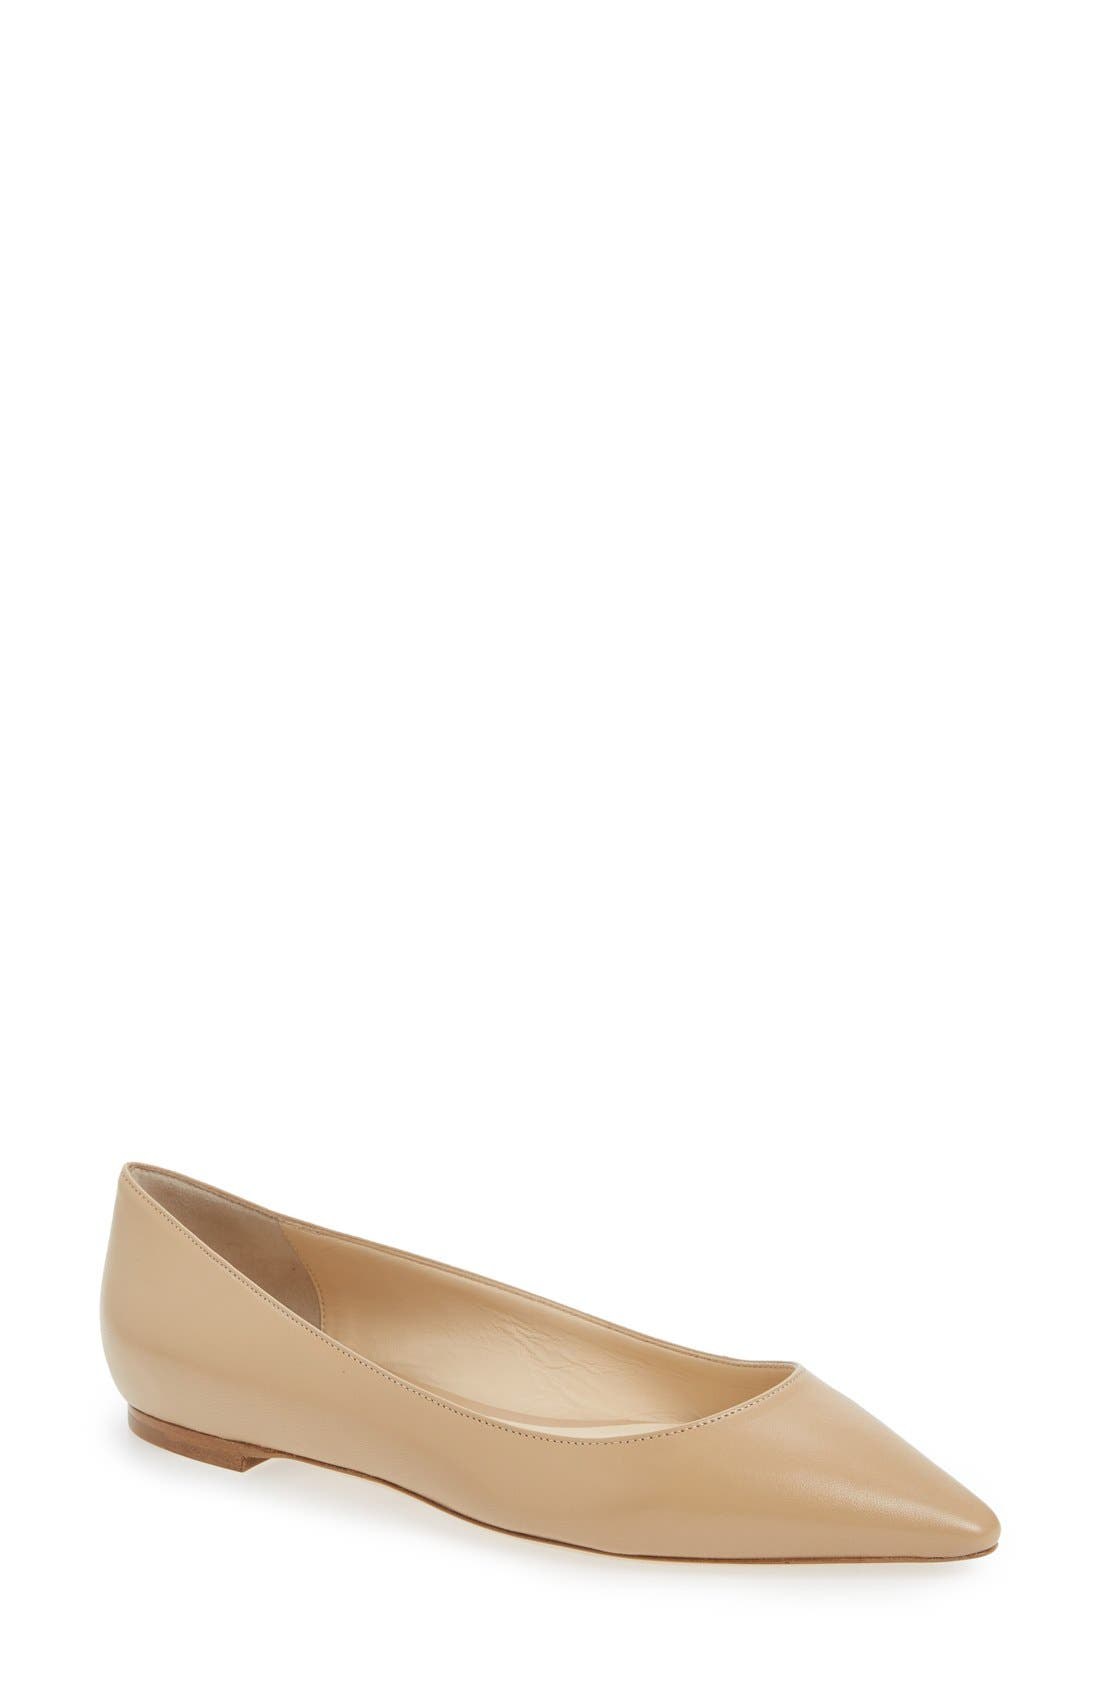 'Romy' Pointy Toe Flat,                             Main thumbnail 9, color,